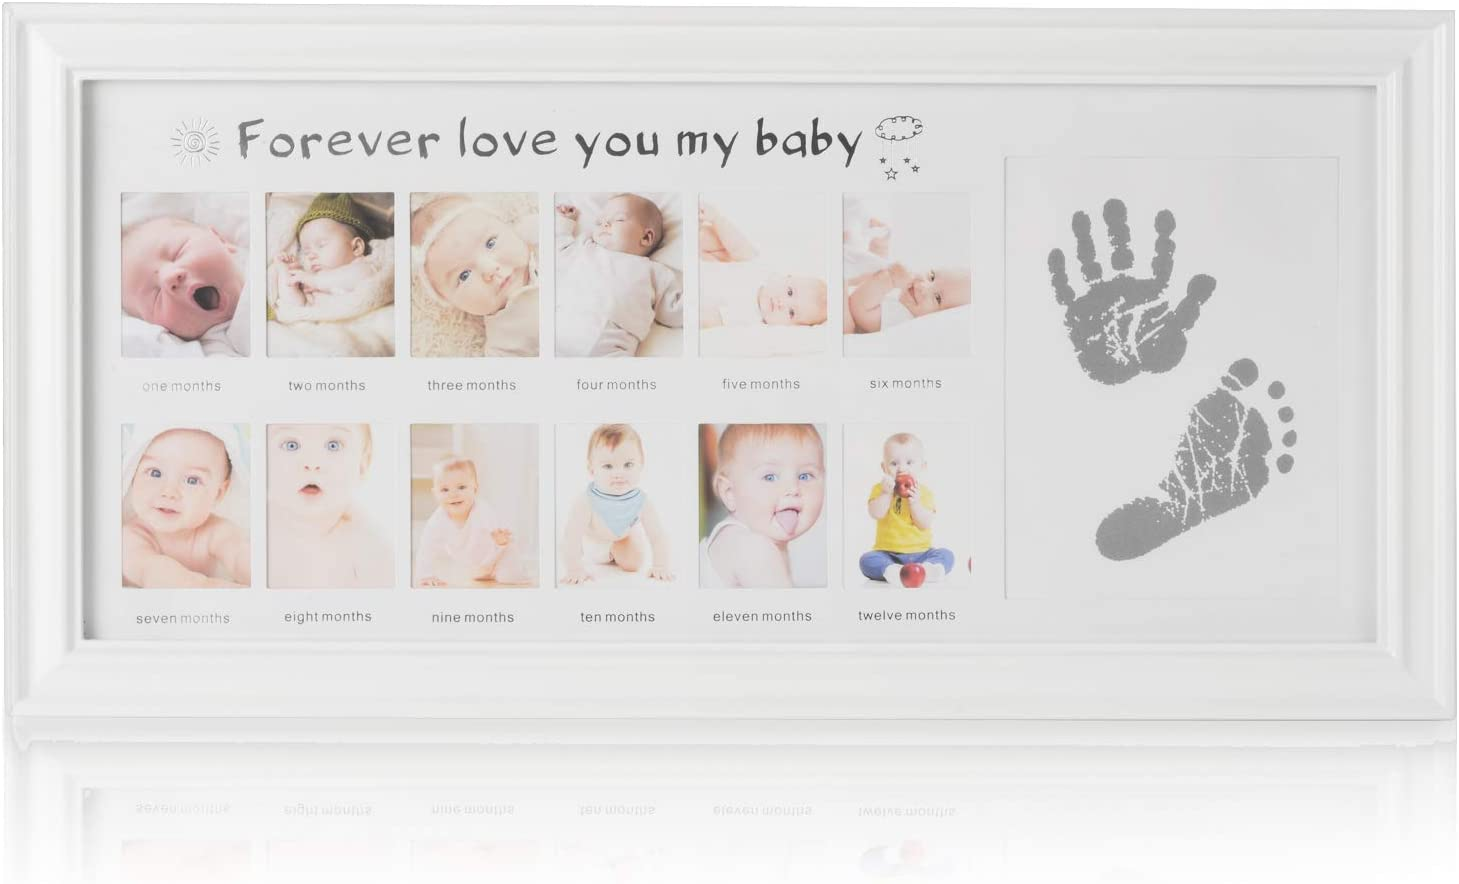 Olele Babies Memorable Keepsake Set Picture Frame with Non-Toxic Clay//Ink/ Best Shower//Birth Registry Gifts for Newborn Infant Ink TypeA Baby Handprint/&Footprint Kit//Baby First Year Photo Frame